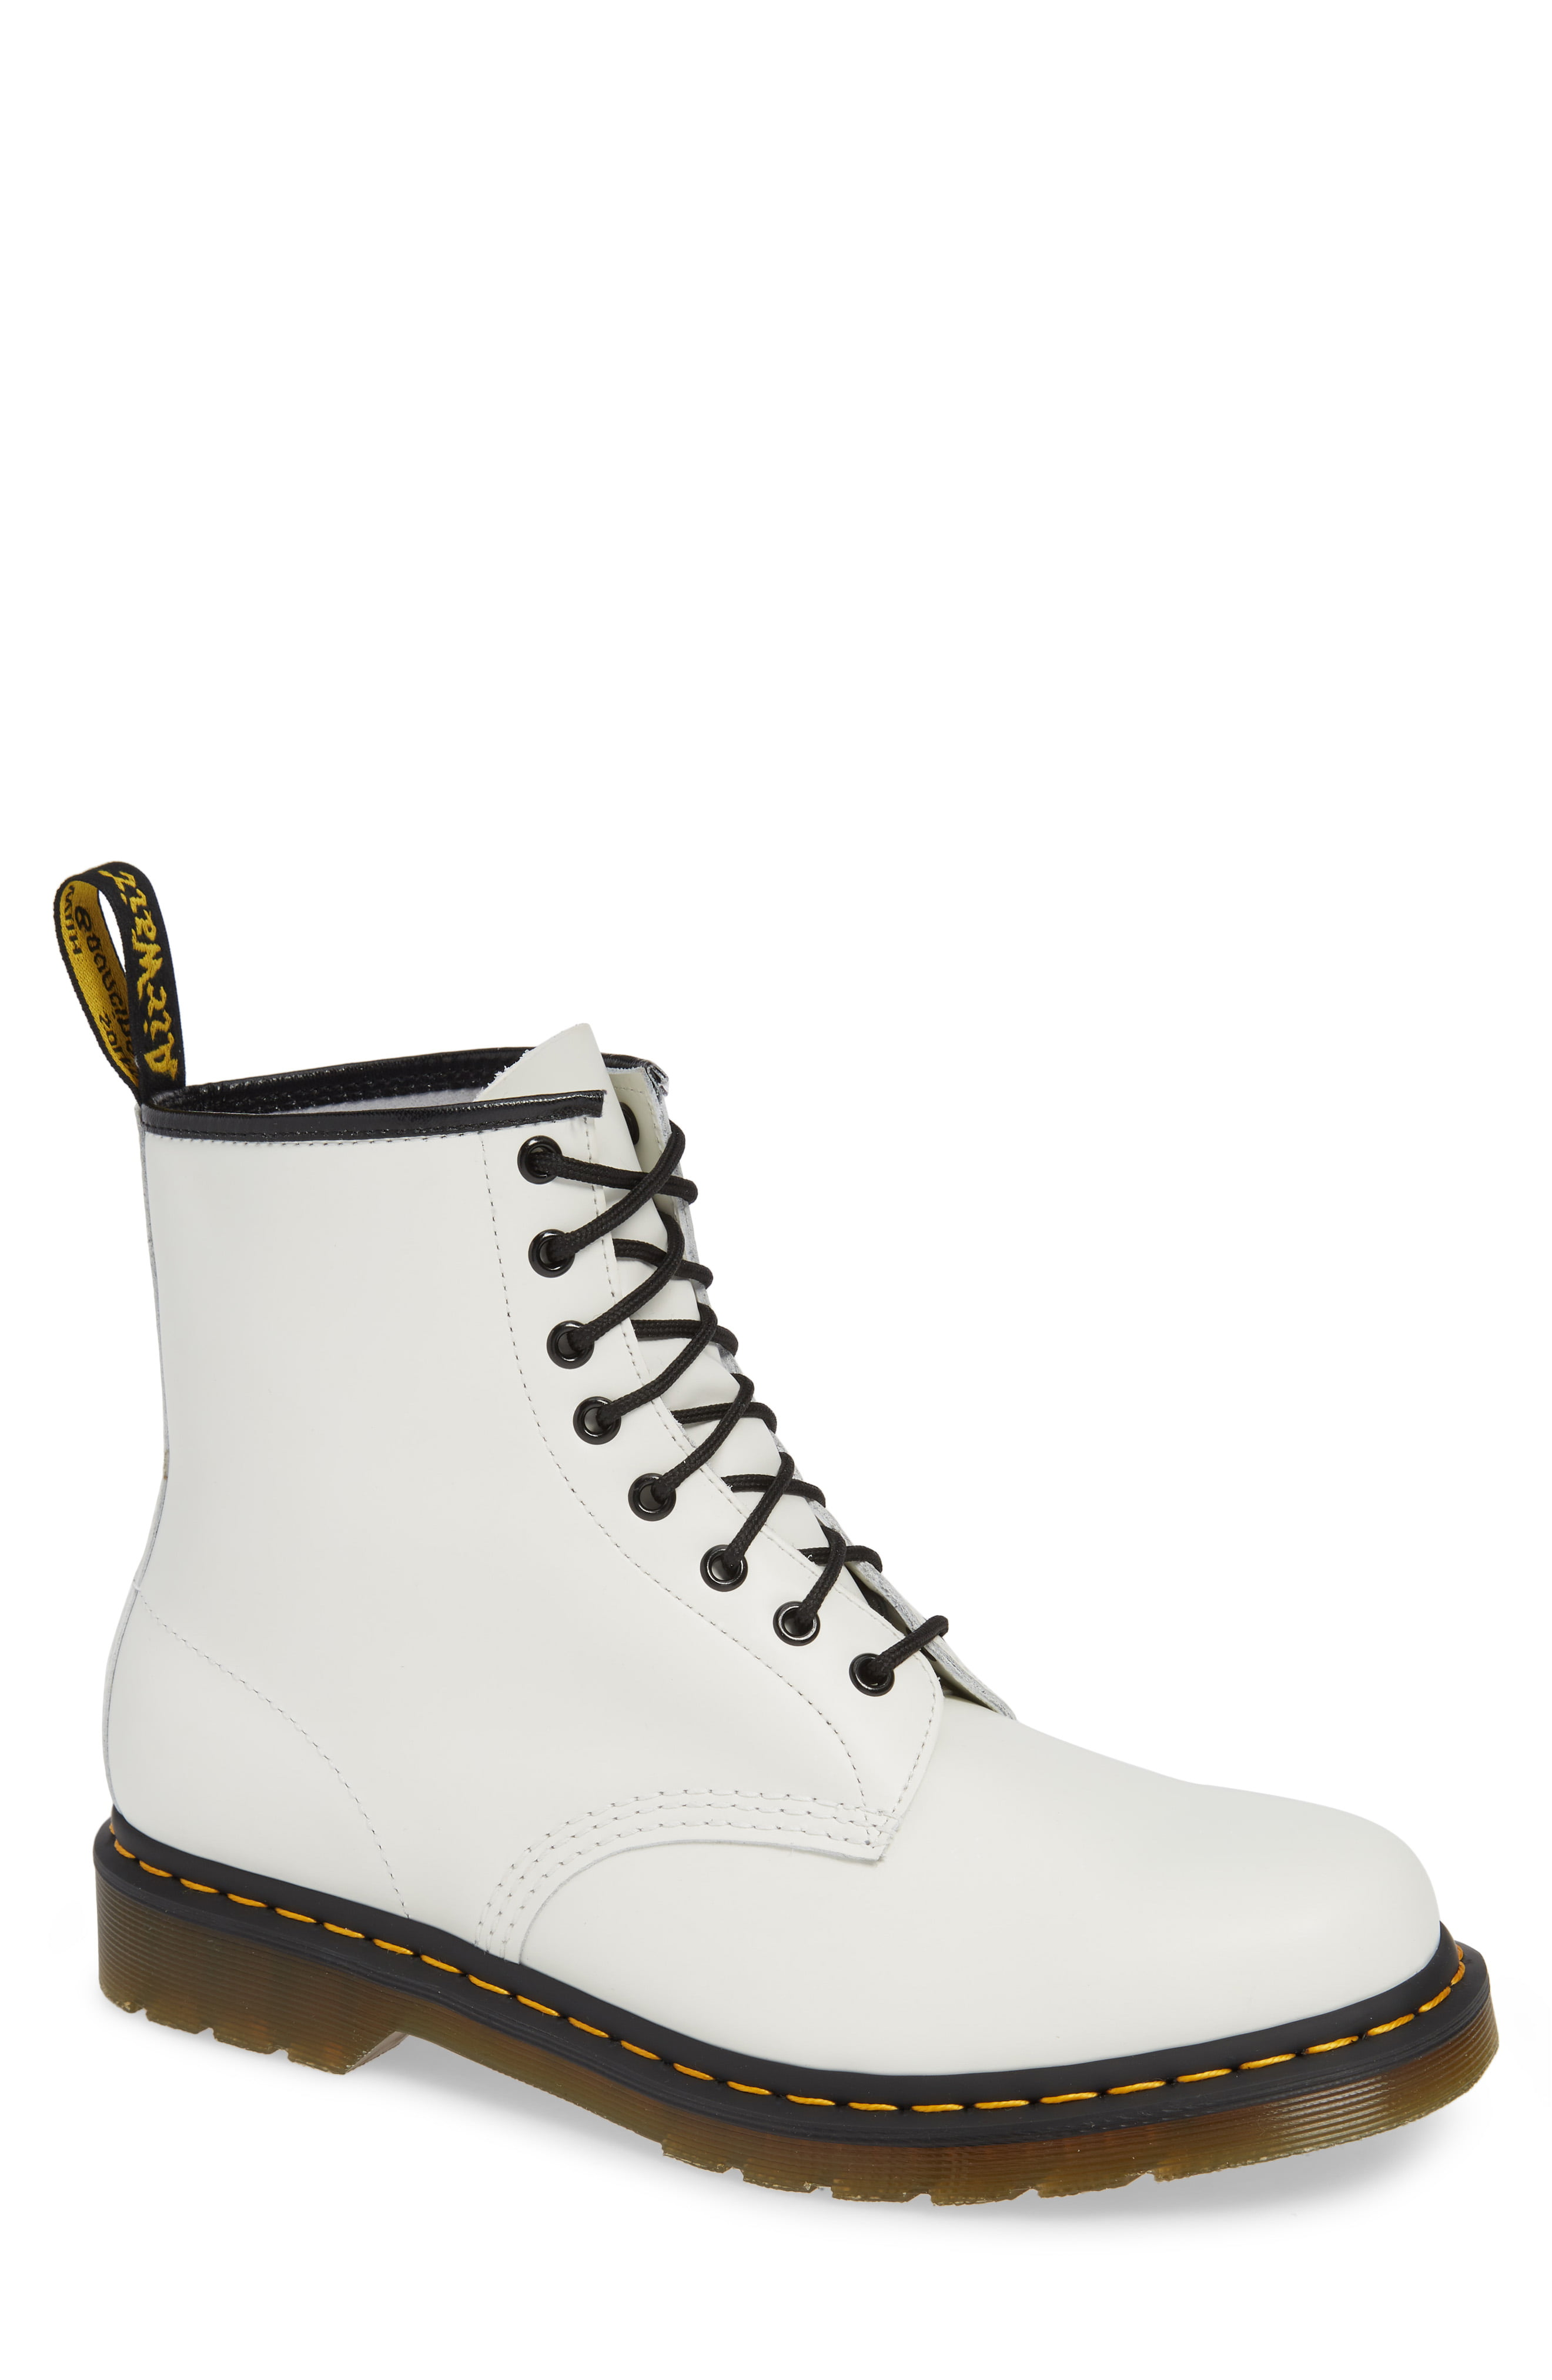 1460 Boots in Black by Dr. Marten, available on nordstrom.com for $140 Kendall Jenner Shoes Exact Product